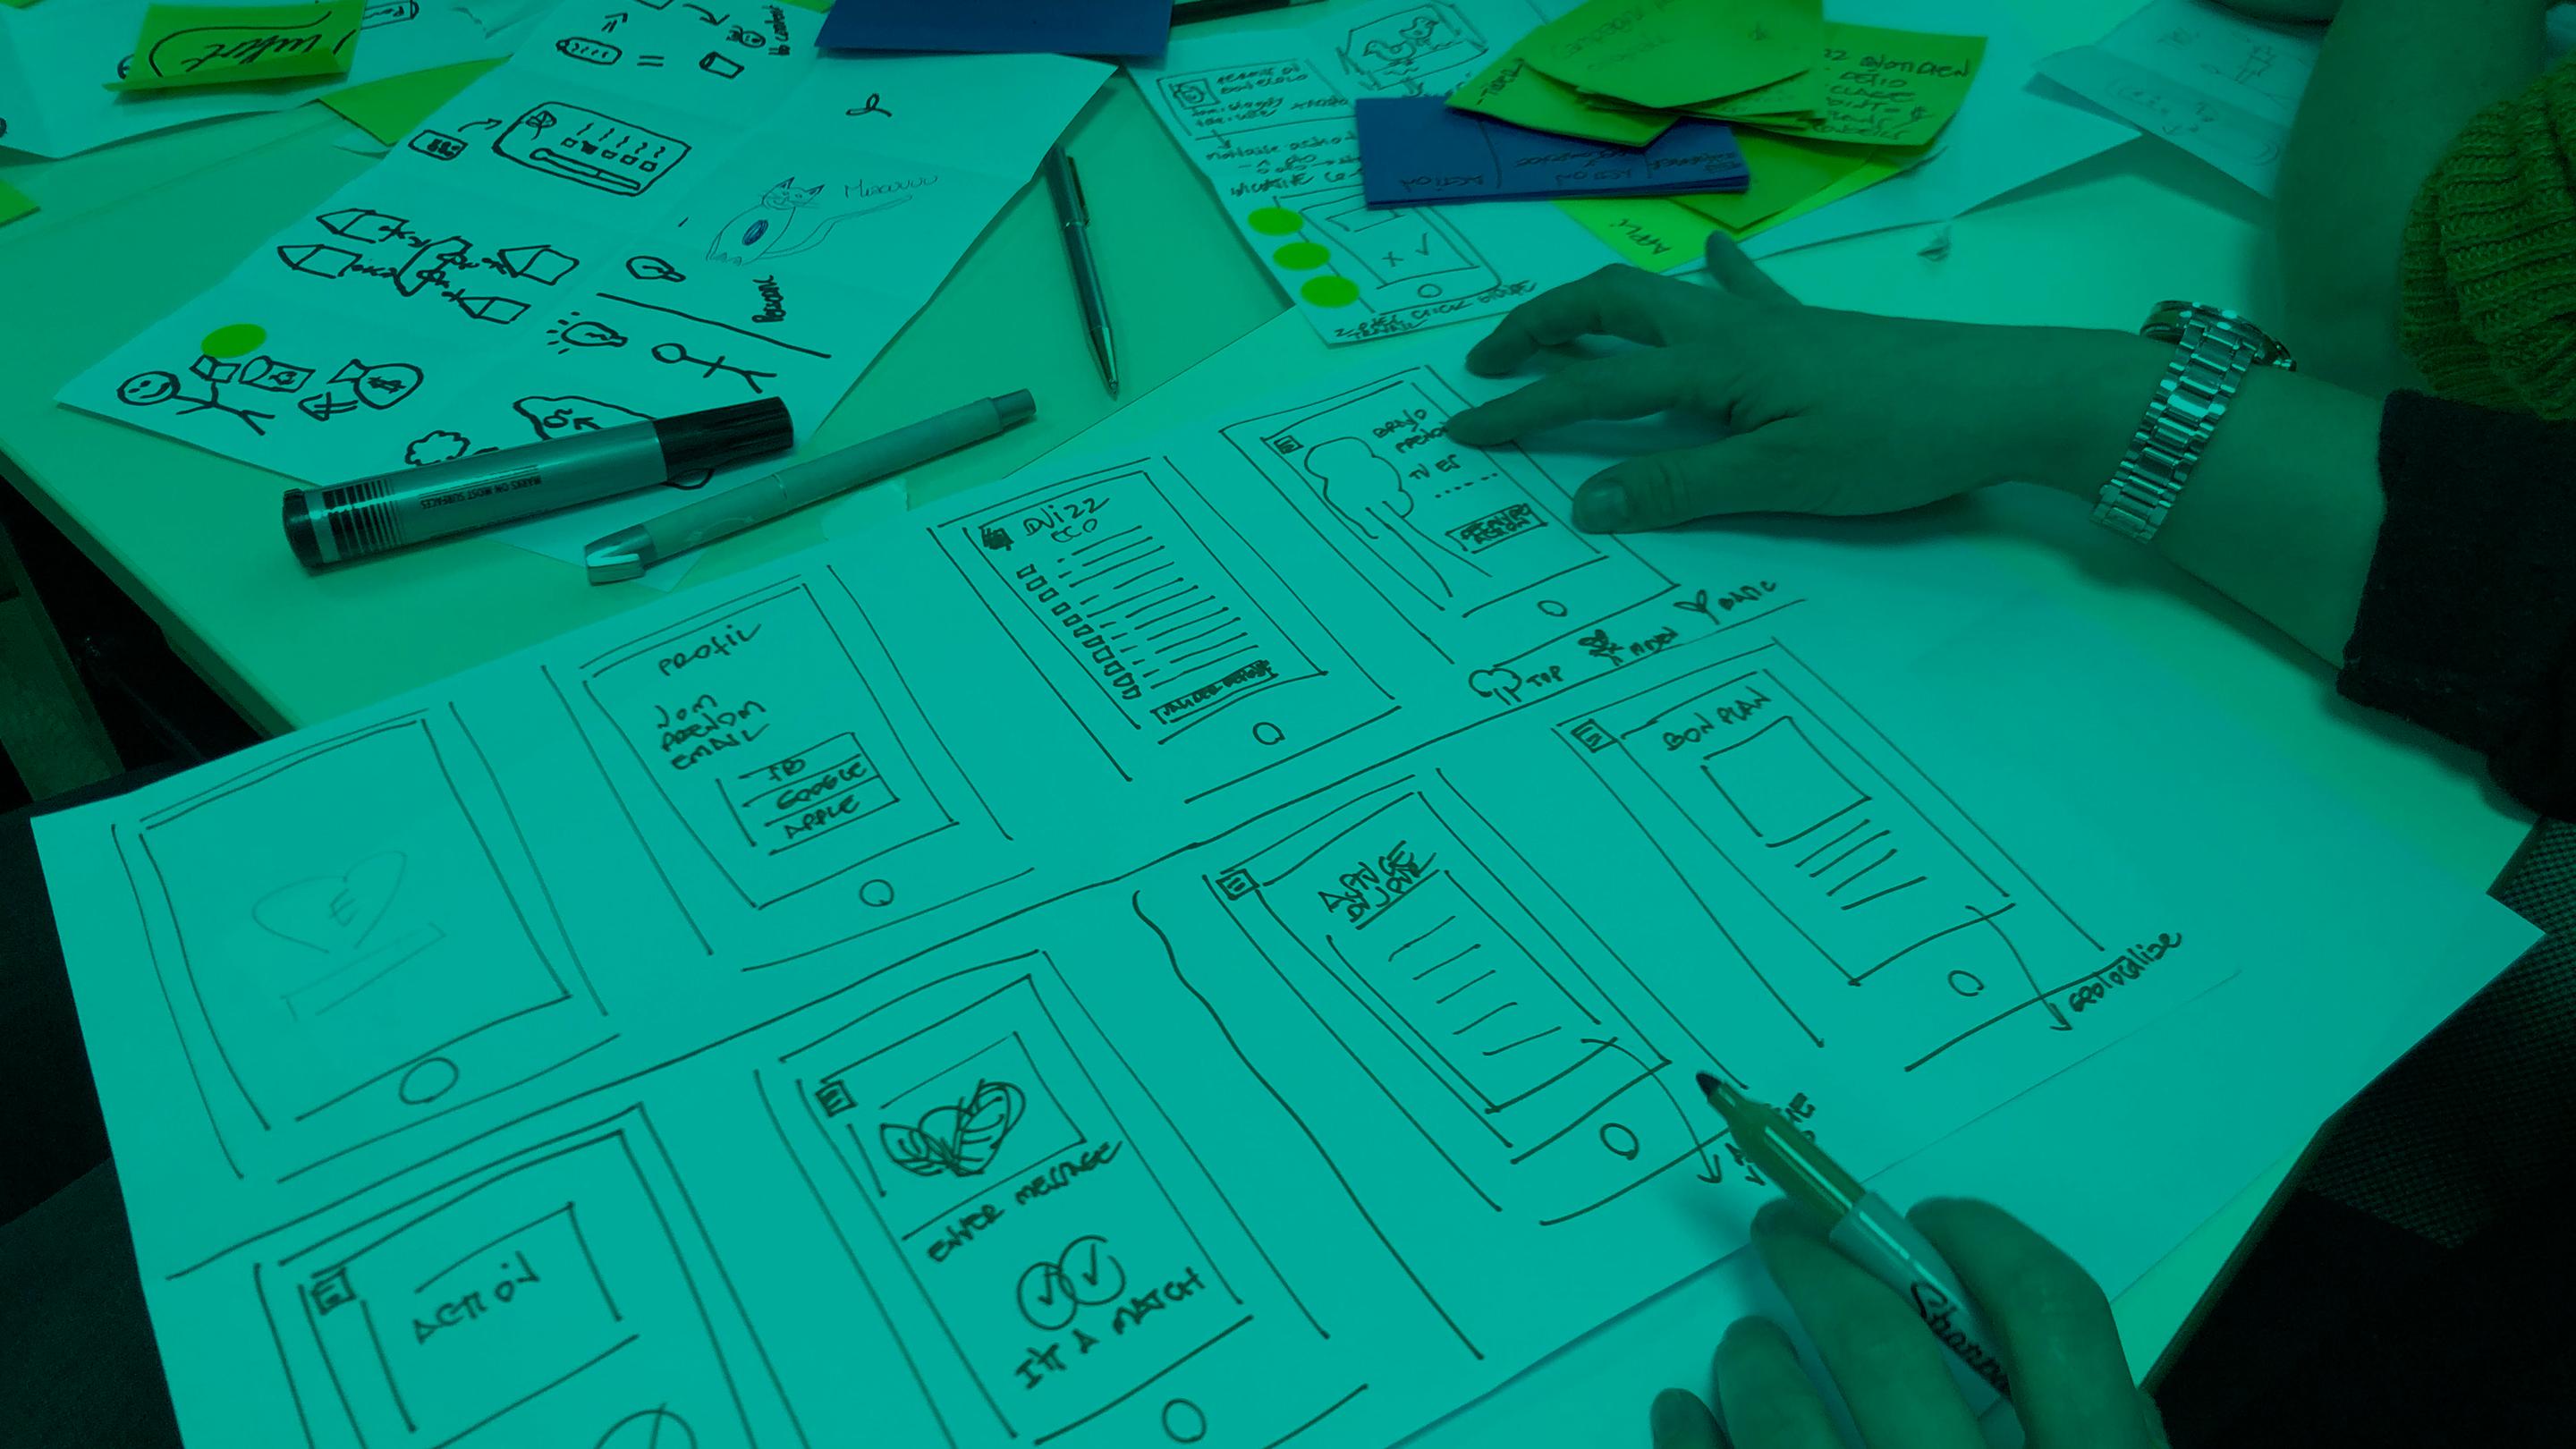 Wat is het verschil tussen user experience design en user interface design?